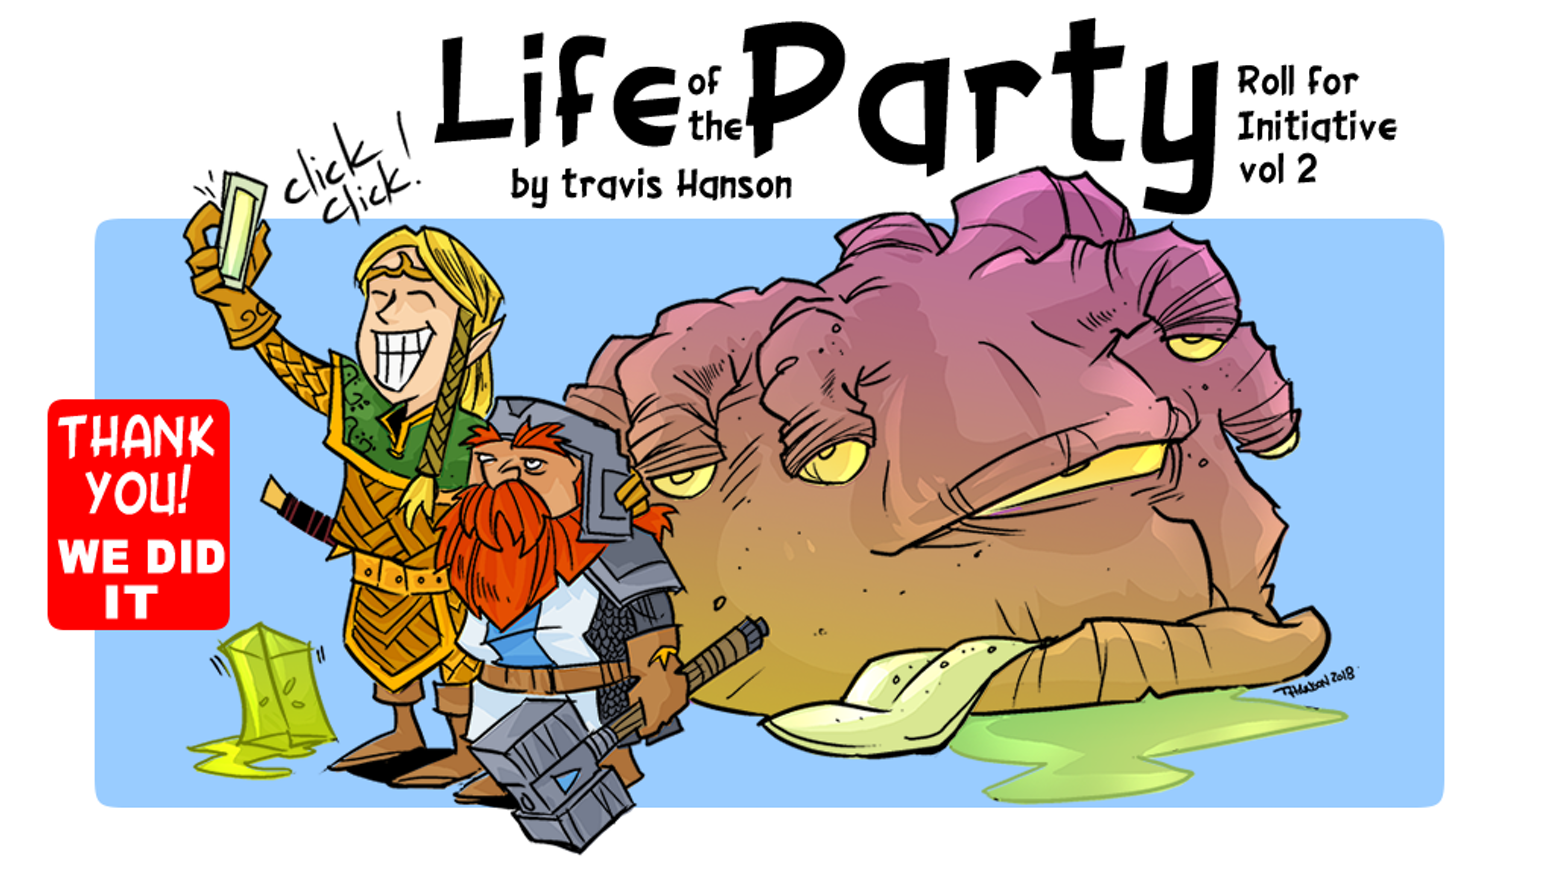 The quest continues - with a dose of humor & some of your best RPG and geek moments from your party's gaming table.